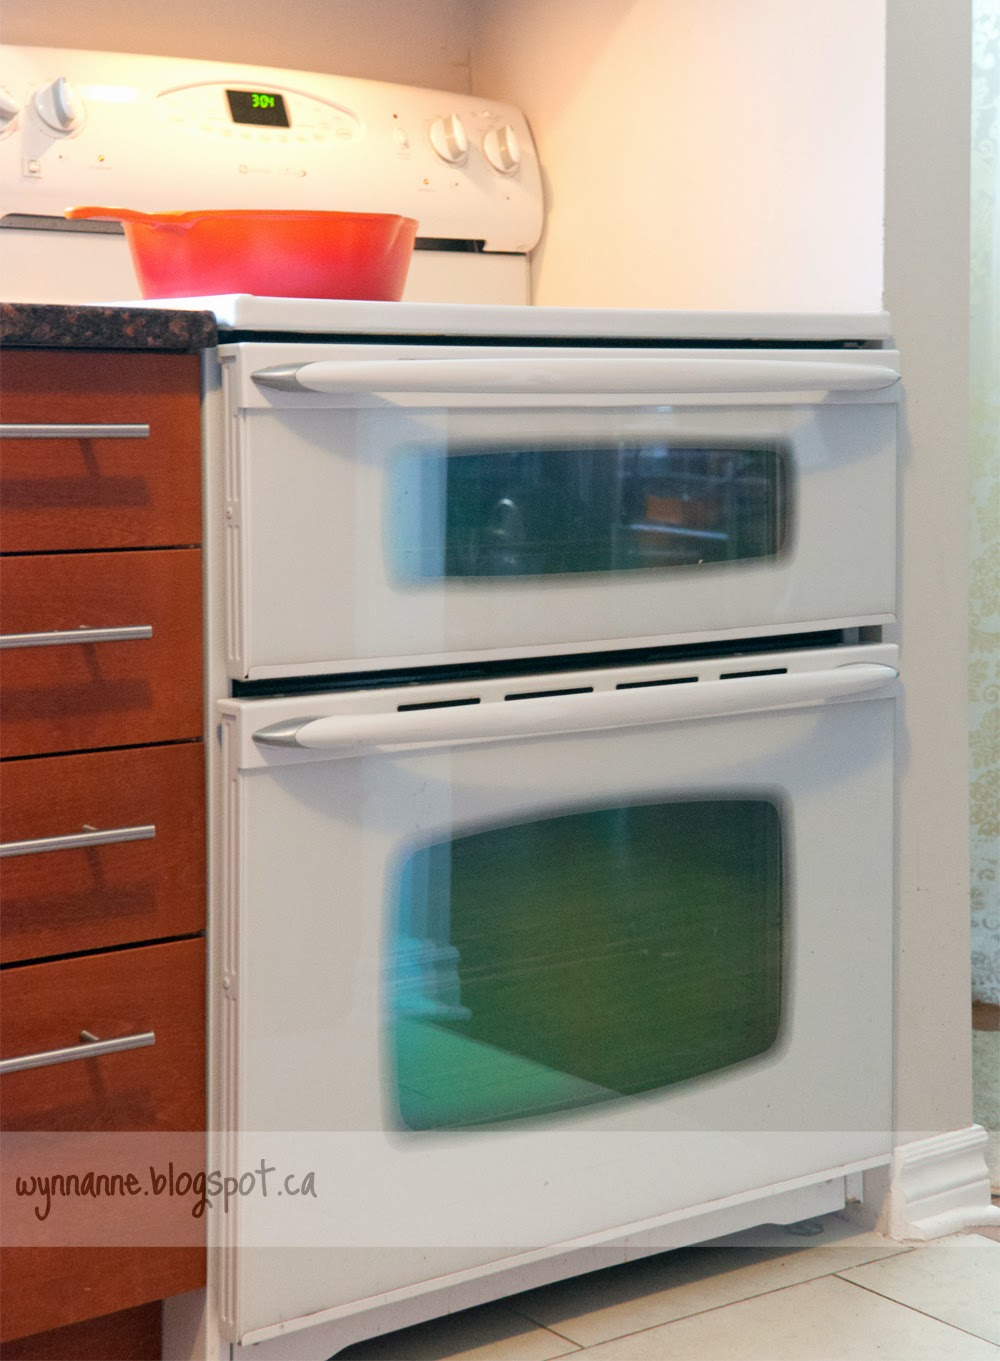 Maytag double oven - Wynn Anne's Meanderings